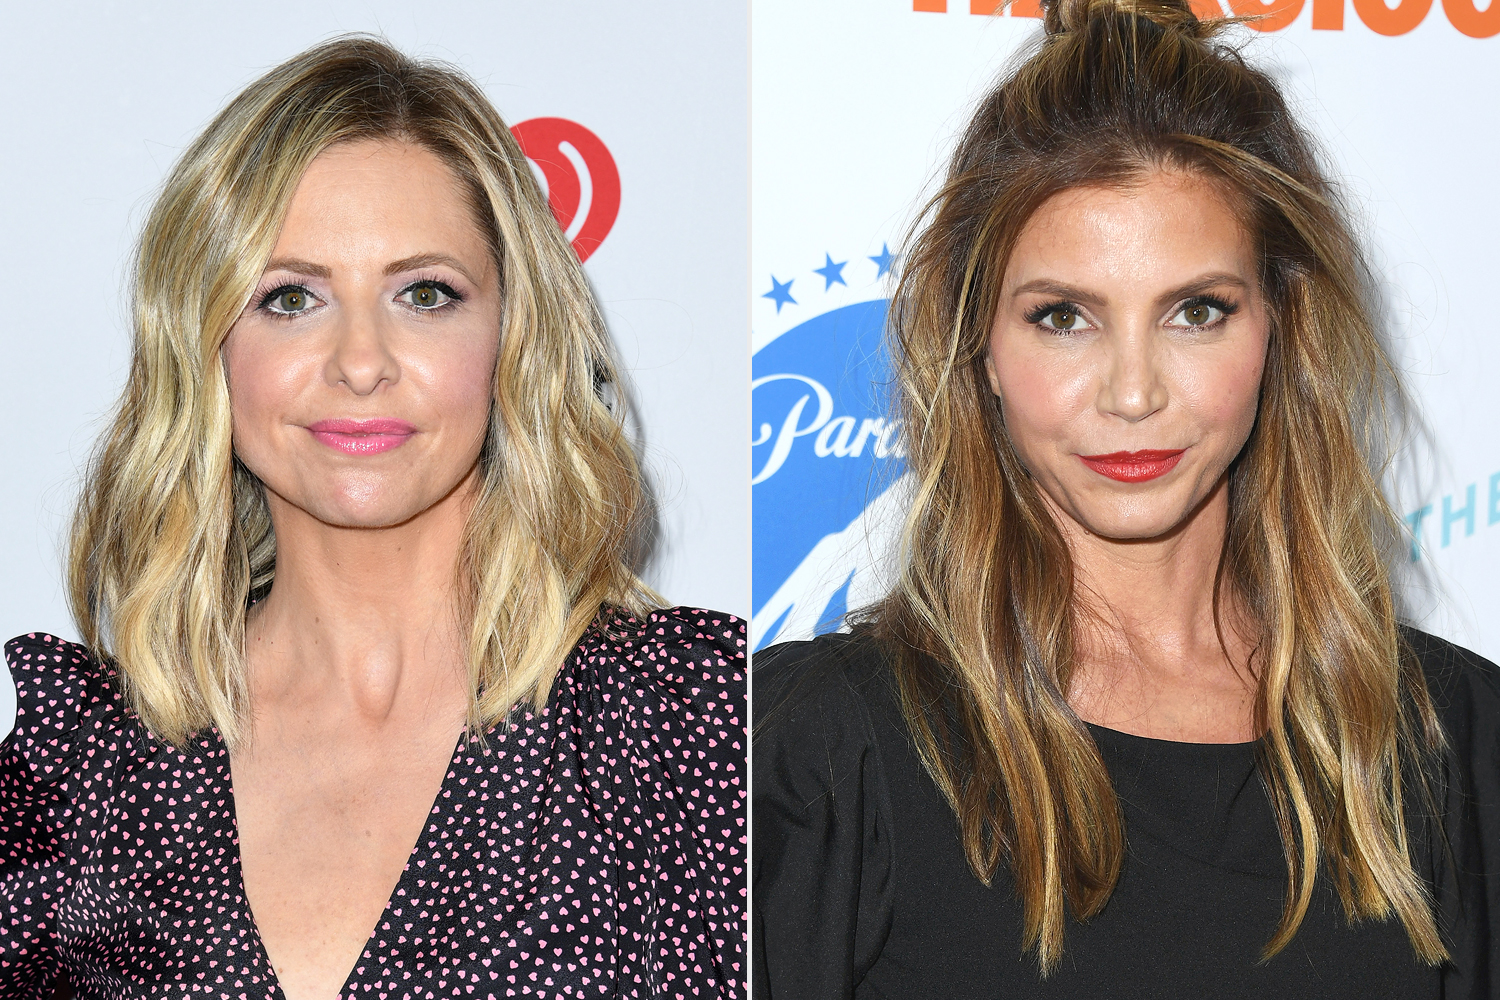 Sarah Michelle and Charisma Carpenter